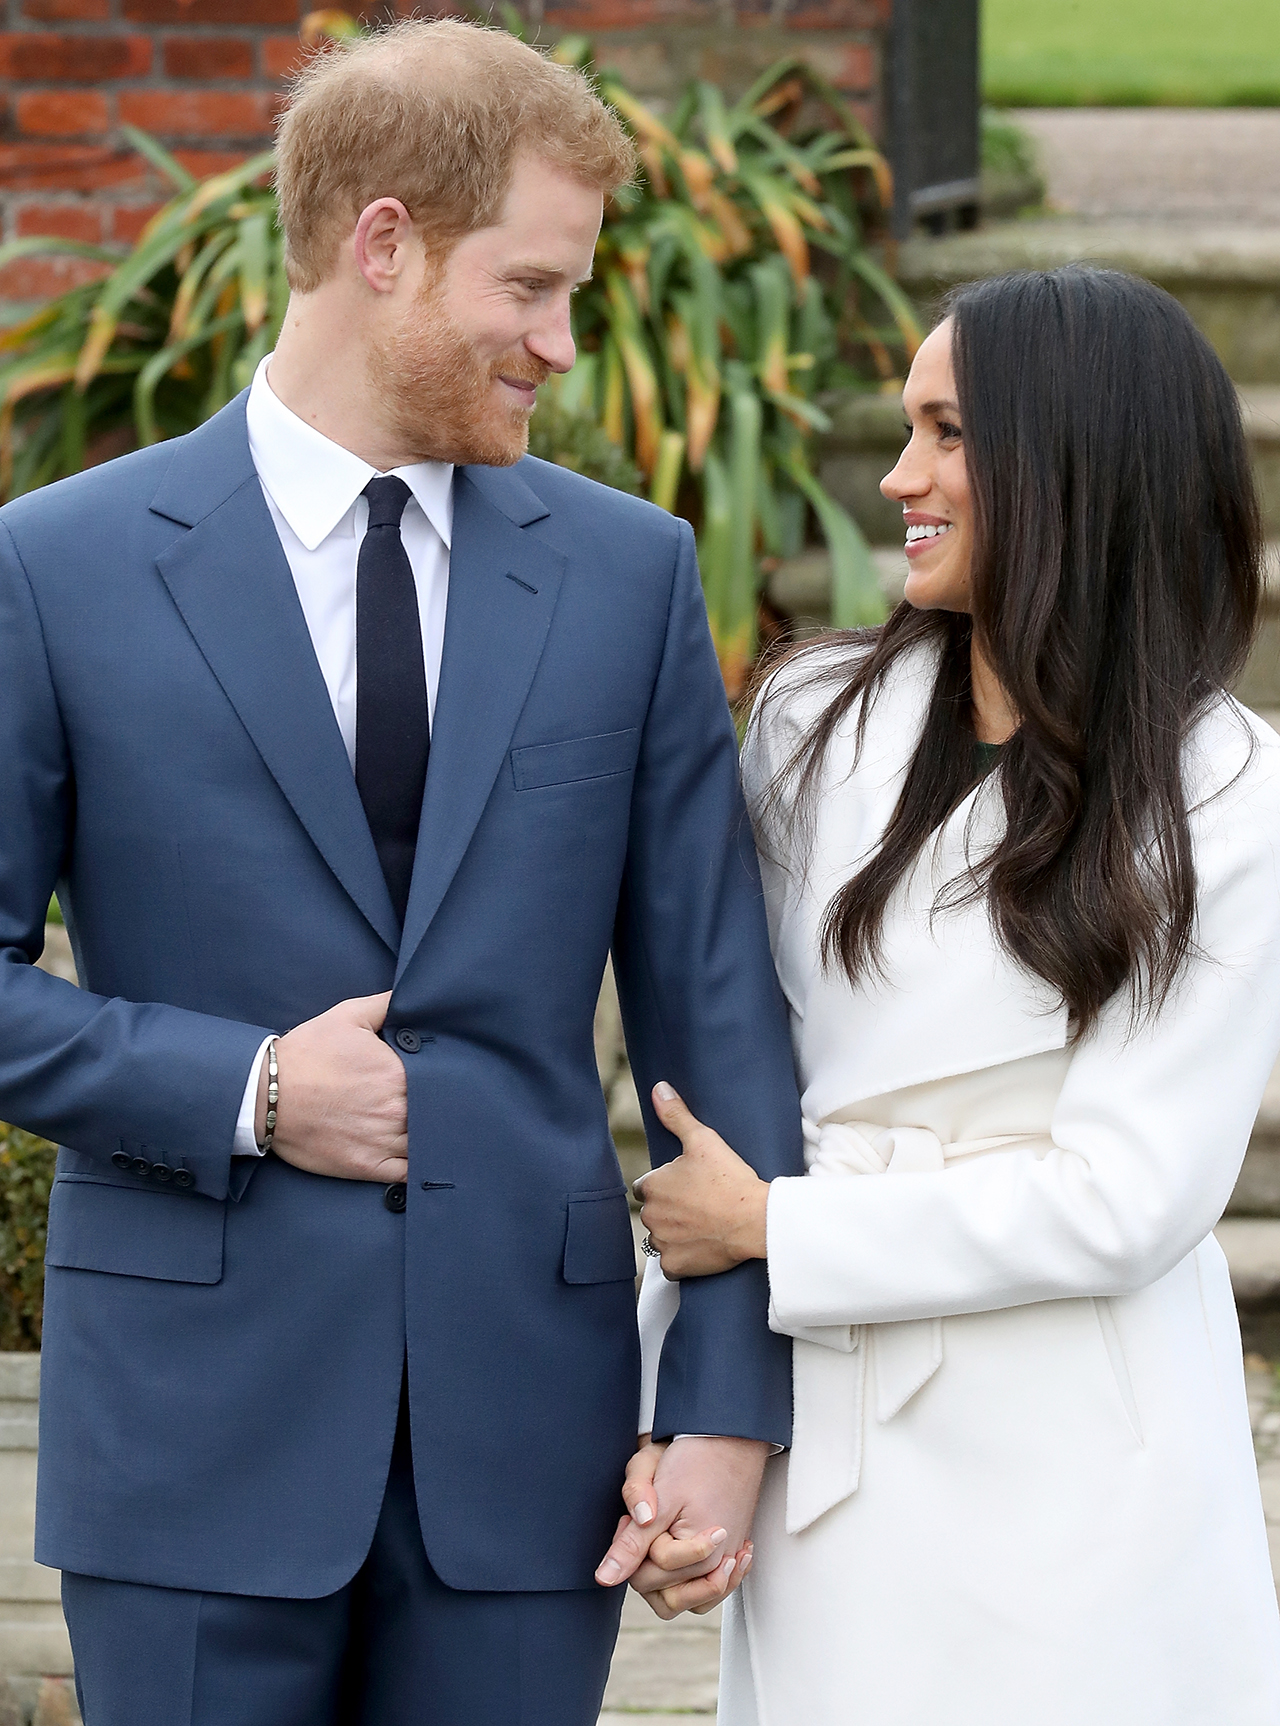 Prince Harry and actress Meghan Markle during an official photocall to announce their engagement at The Sunken Gardens at Kensington Palace on November 27, 2017. (Chris Jackson / Chris Jackson / Getty Images)